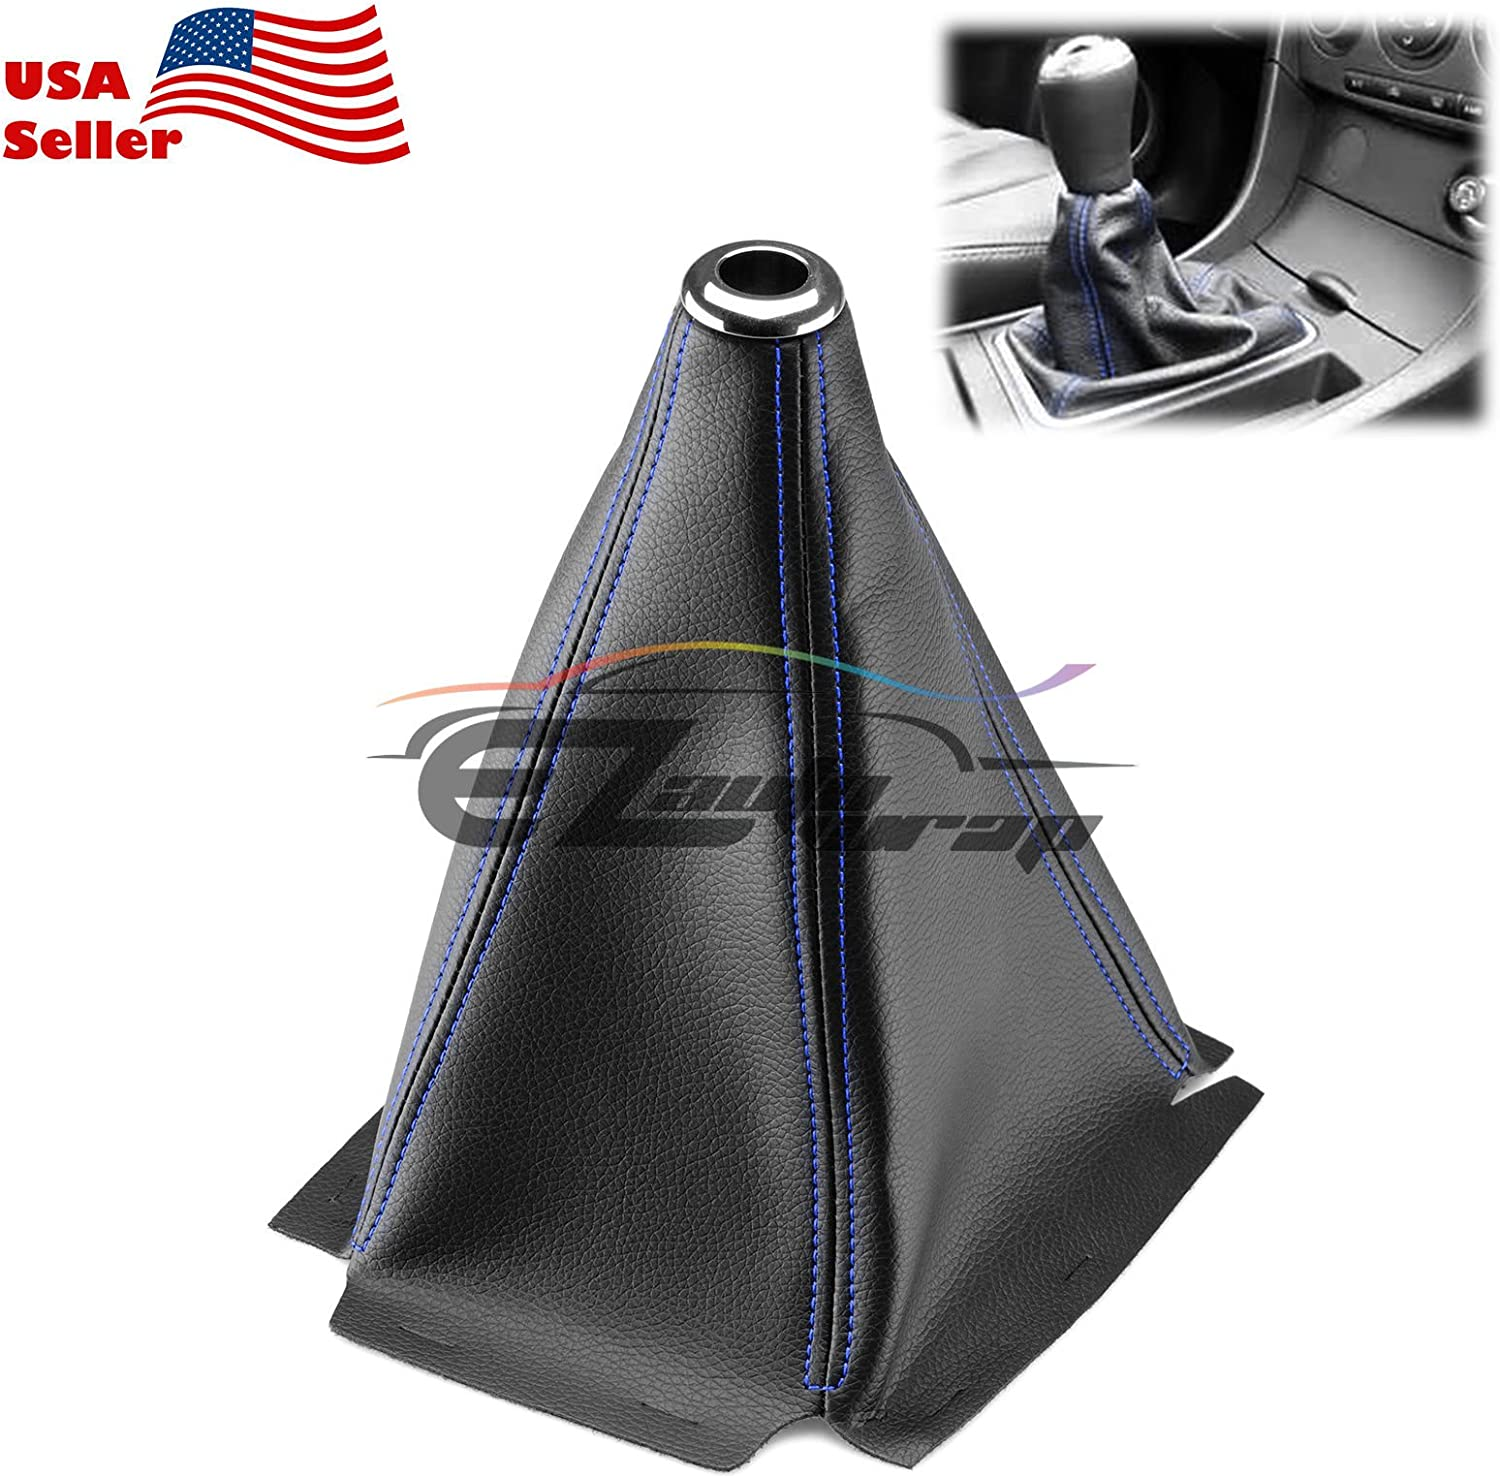 EZAUTOWRAP Universal Shift Knob Shifter Boot Cover Carbon Fiber Style Black with Blue Stitches PVC Leather MT at Sport PVC Leather